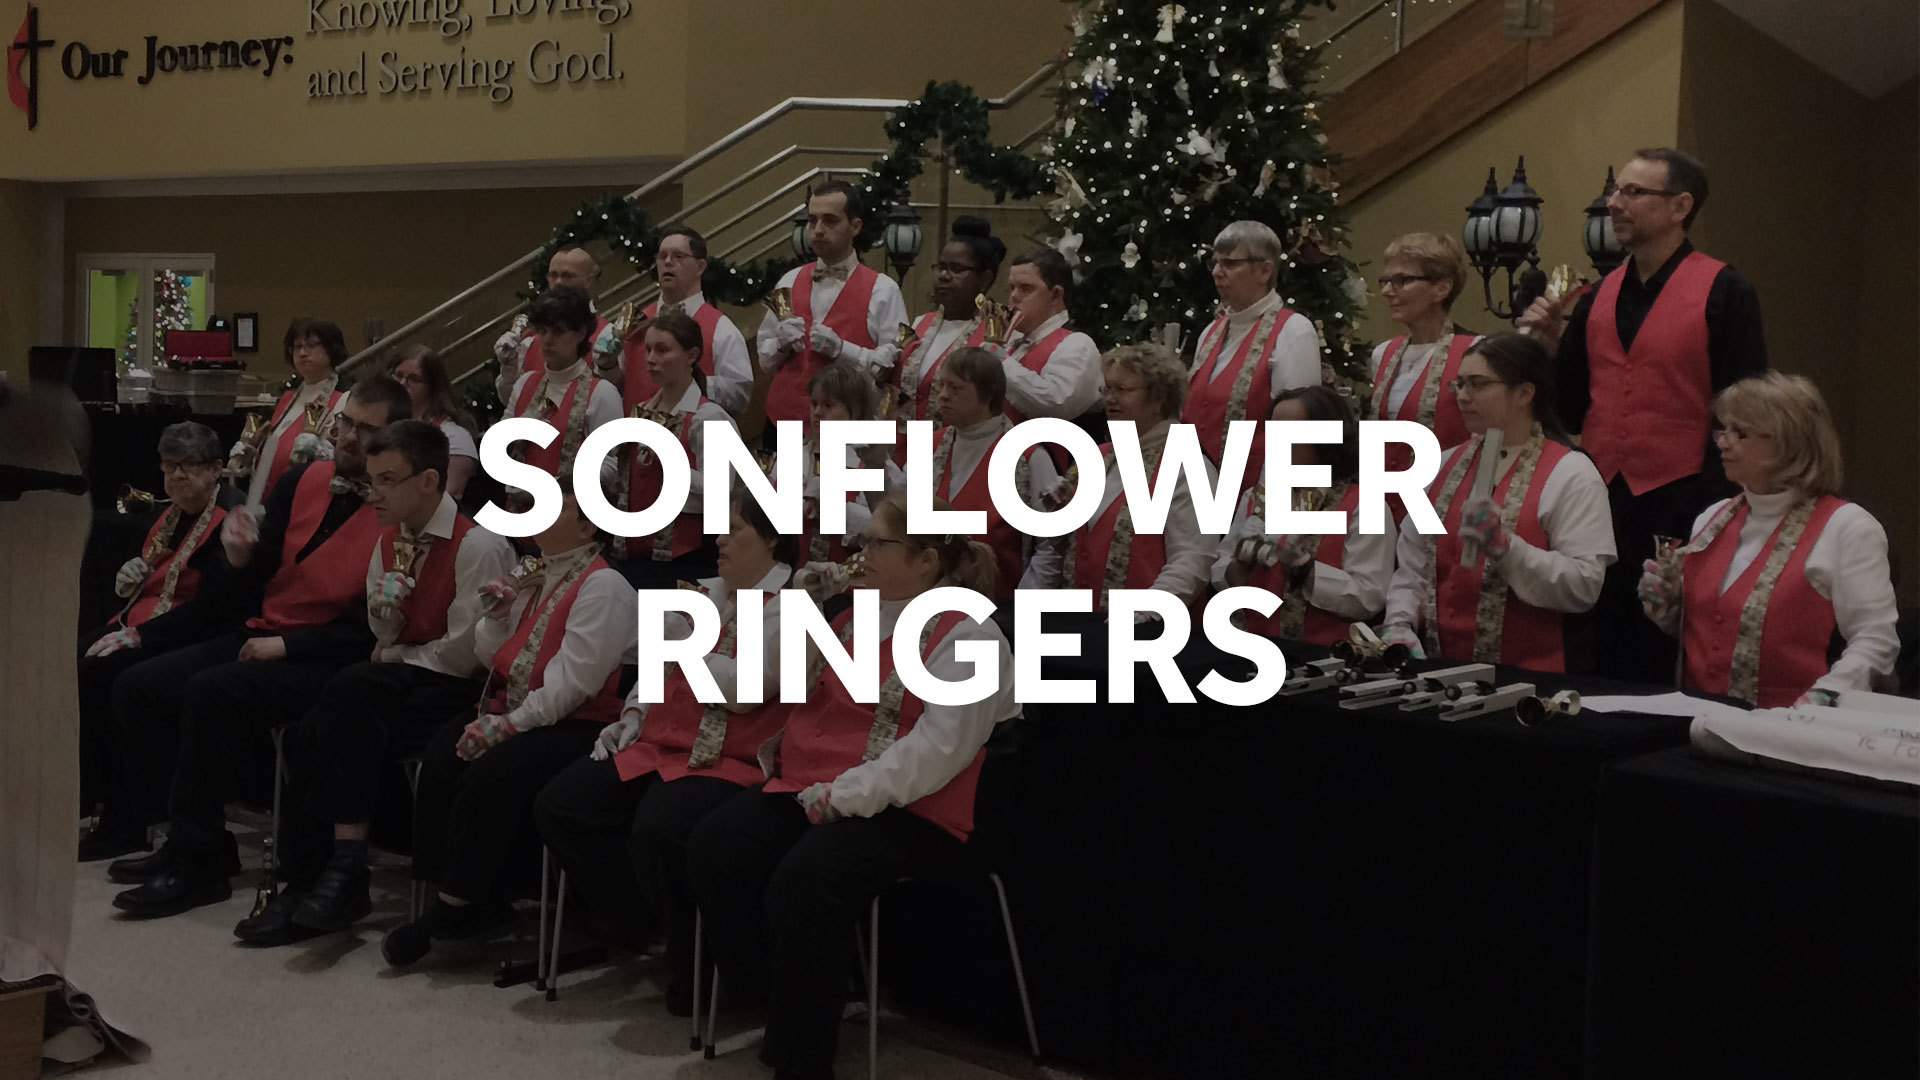 Sonflower Ringers